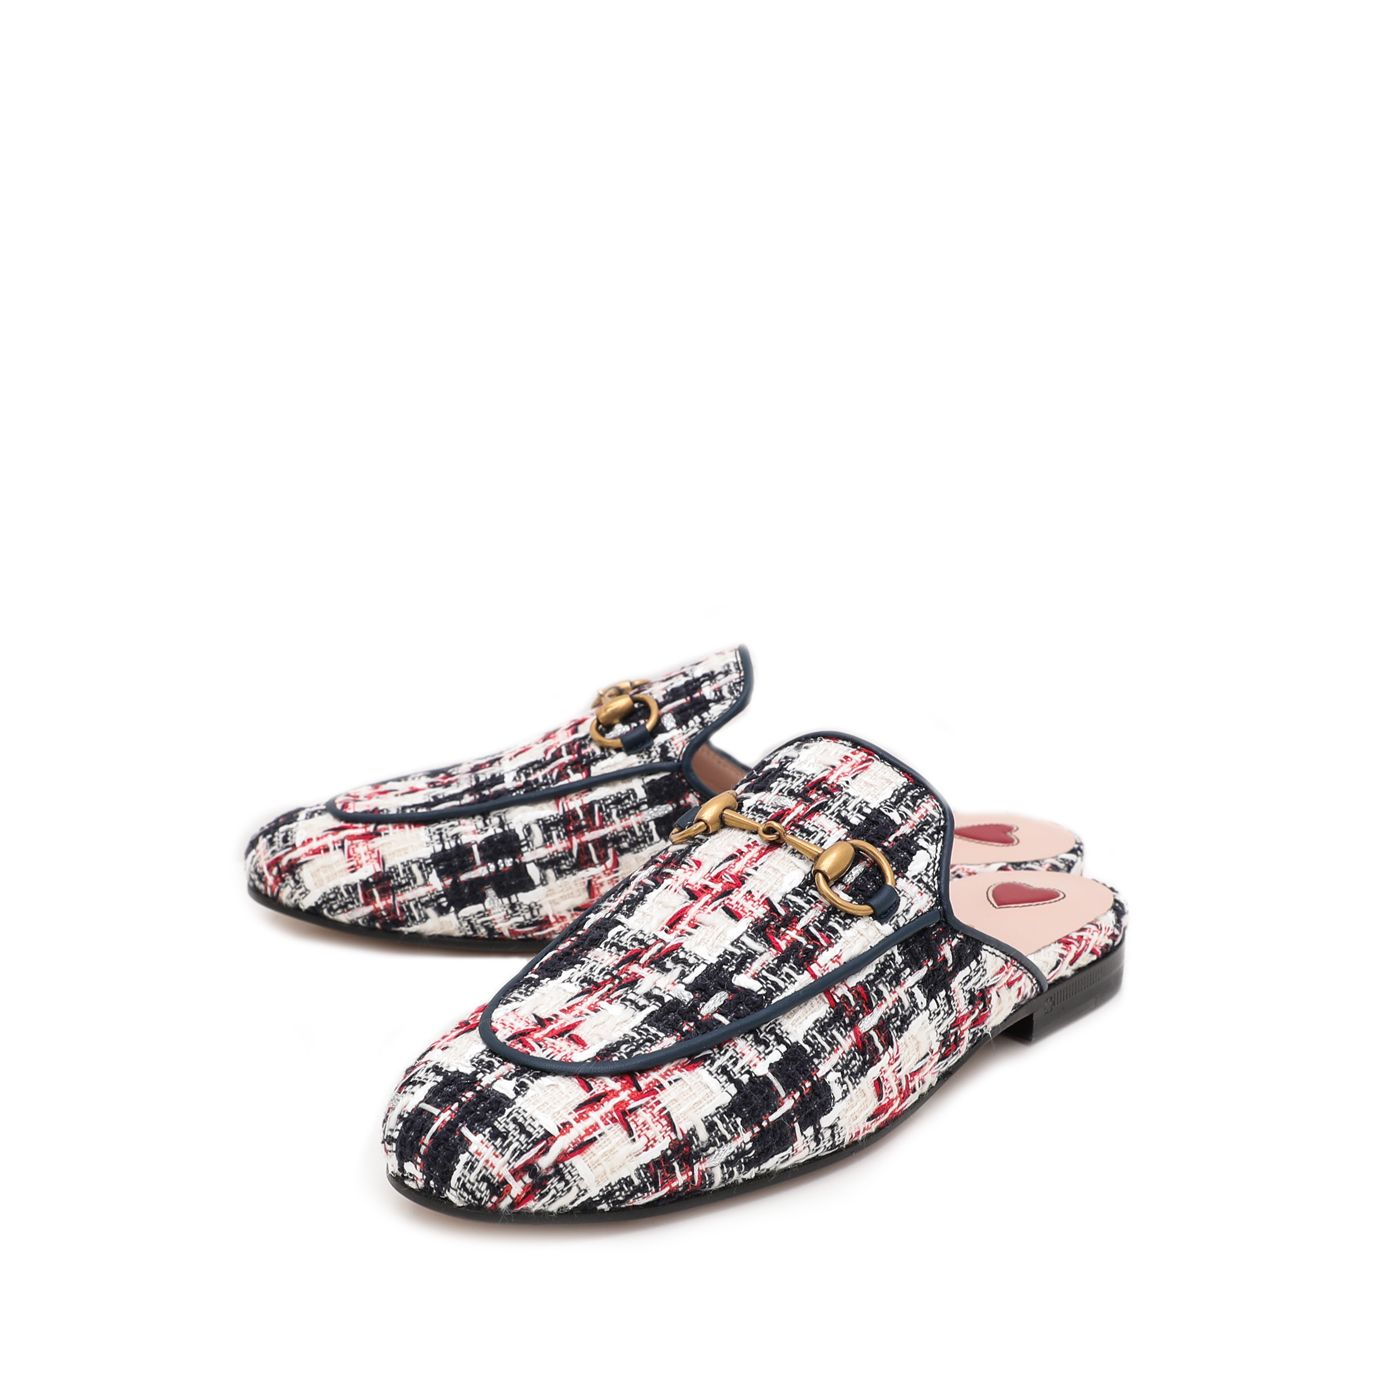 Gucci Multicolor Tweed Princetown Slipper 35